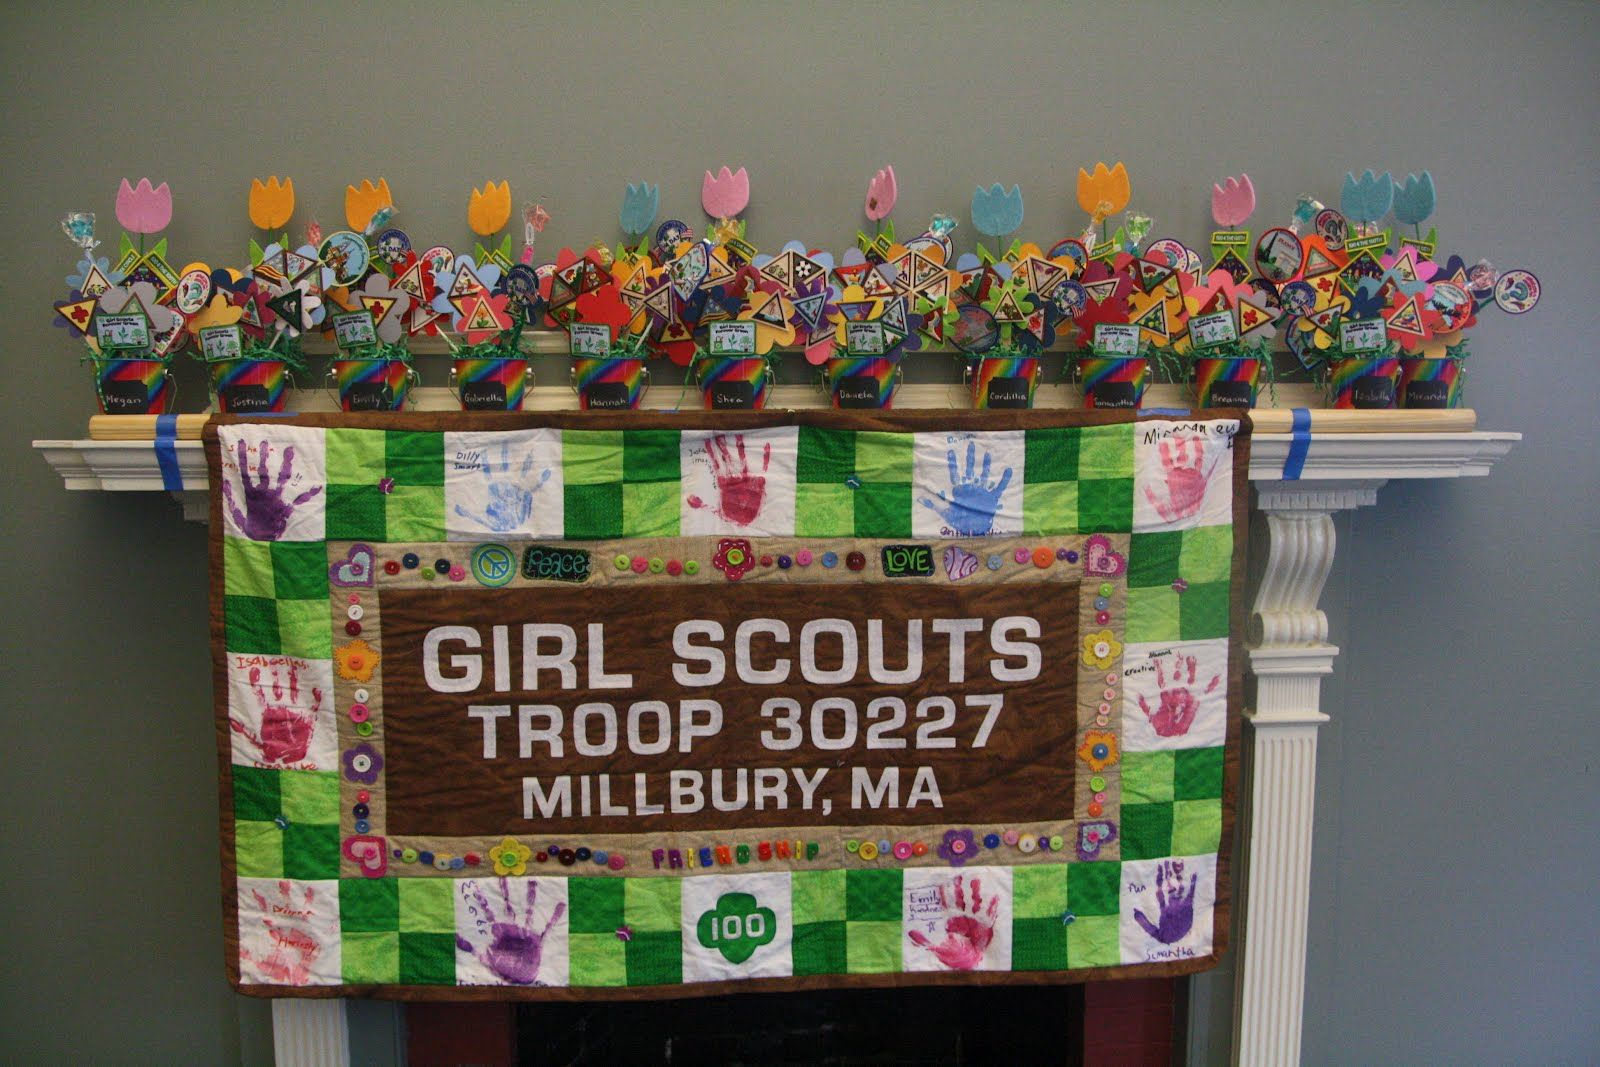 Girl scout scrapbook ideas - A Journal Of Life As It Happens Recording The Major Milestones Amp Little Tidbits So I Can Scrapbook Them Later